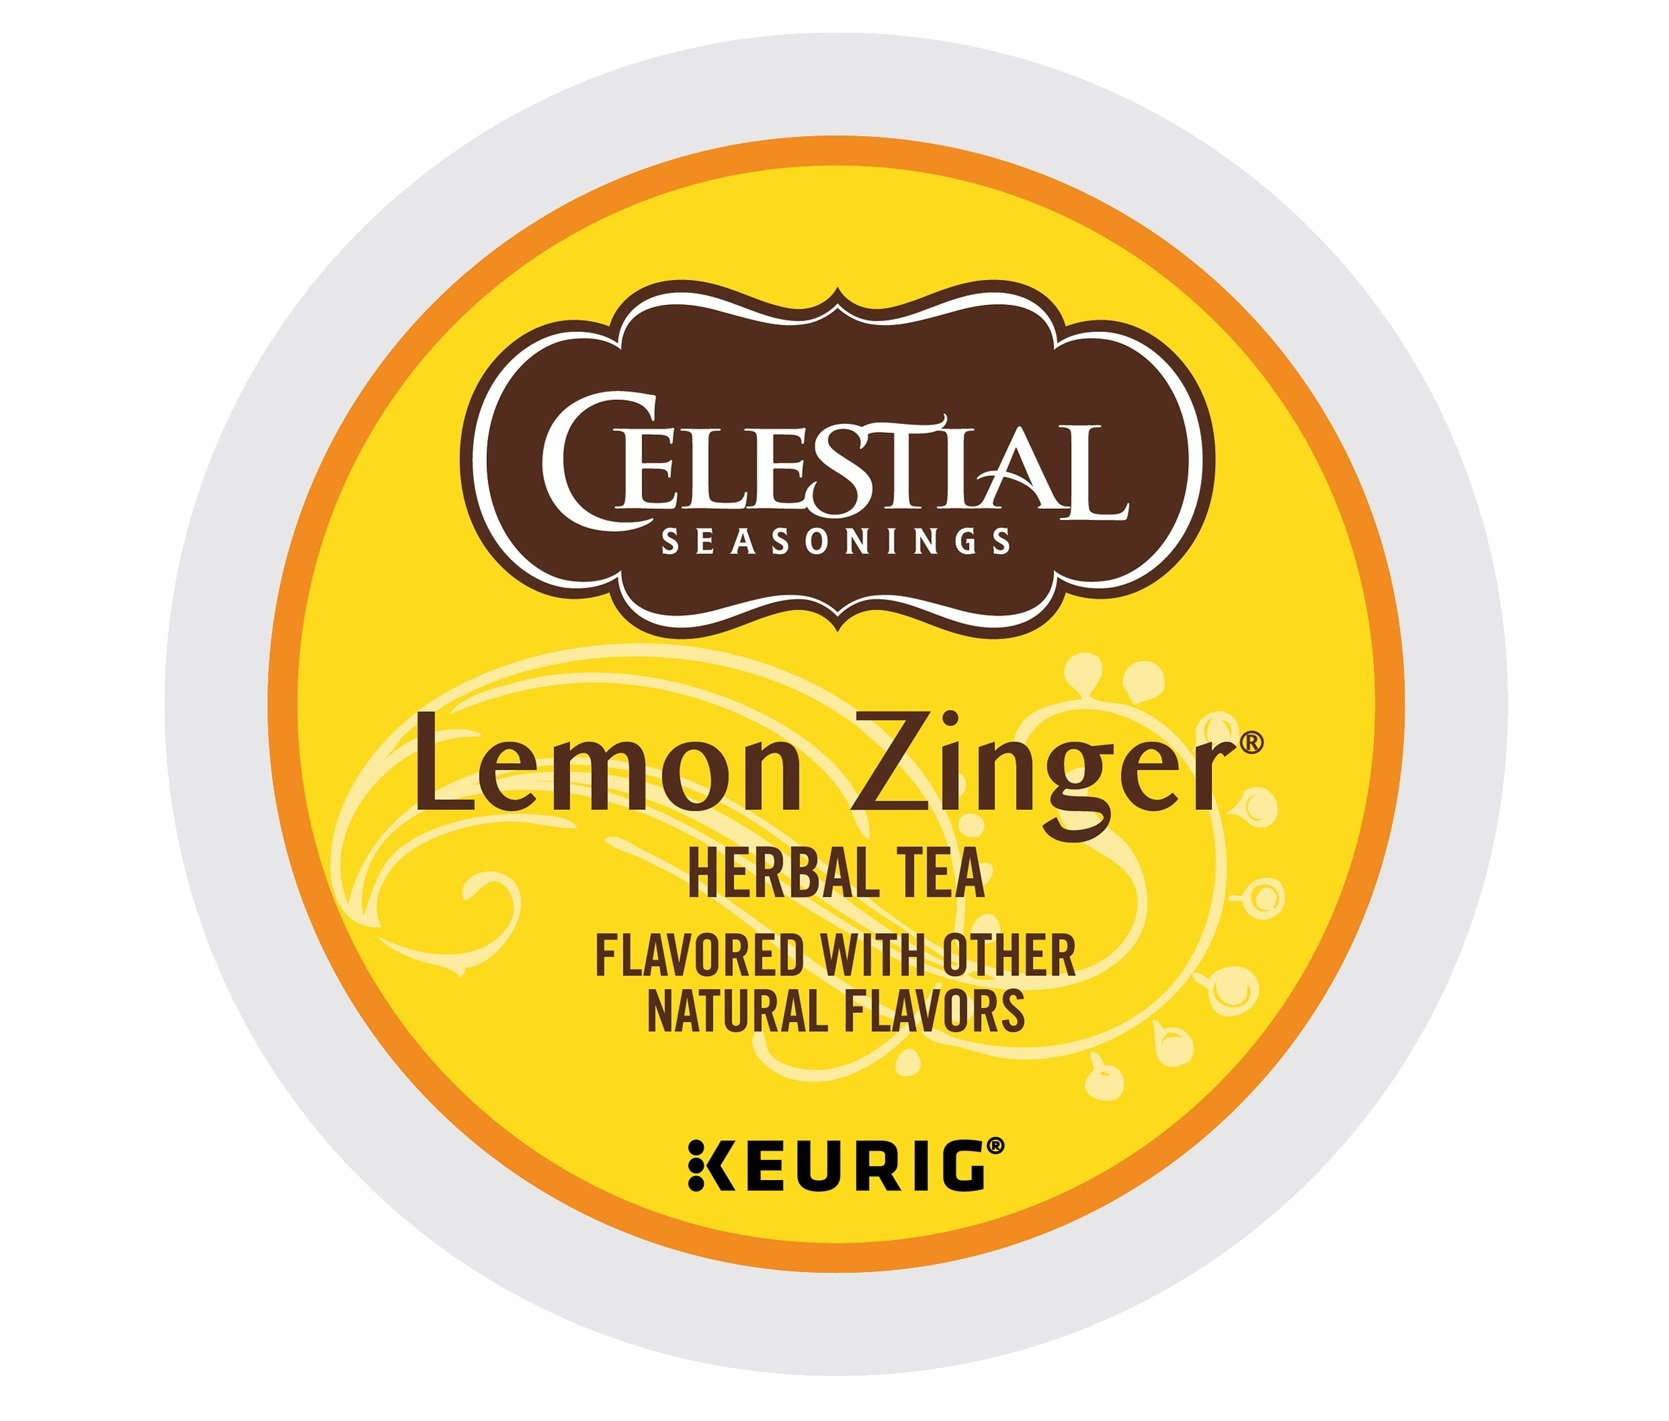 Celestial Seasonings Lemon Zinger Herbal Tea, Single Serve Coffee K-Cup Pod, Tea, 72 by Celestial Seasonings